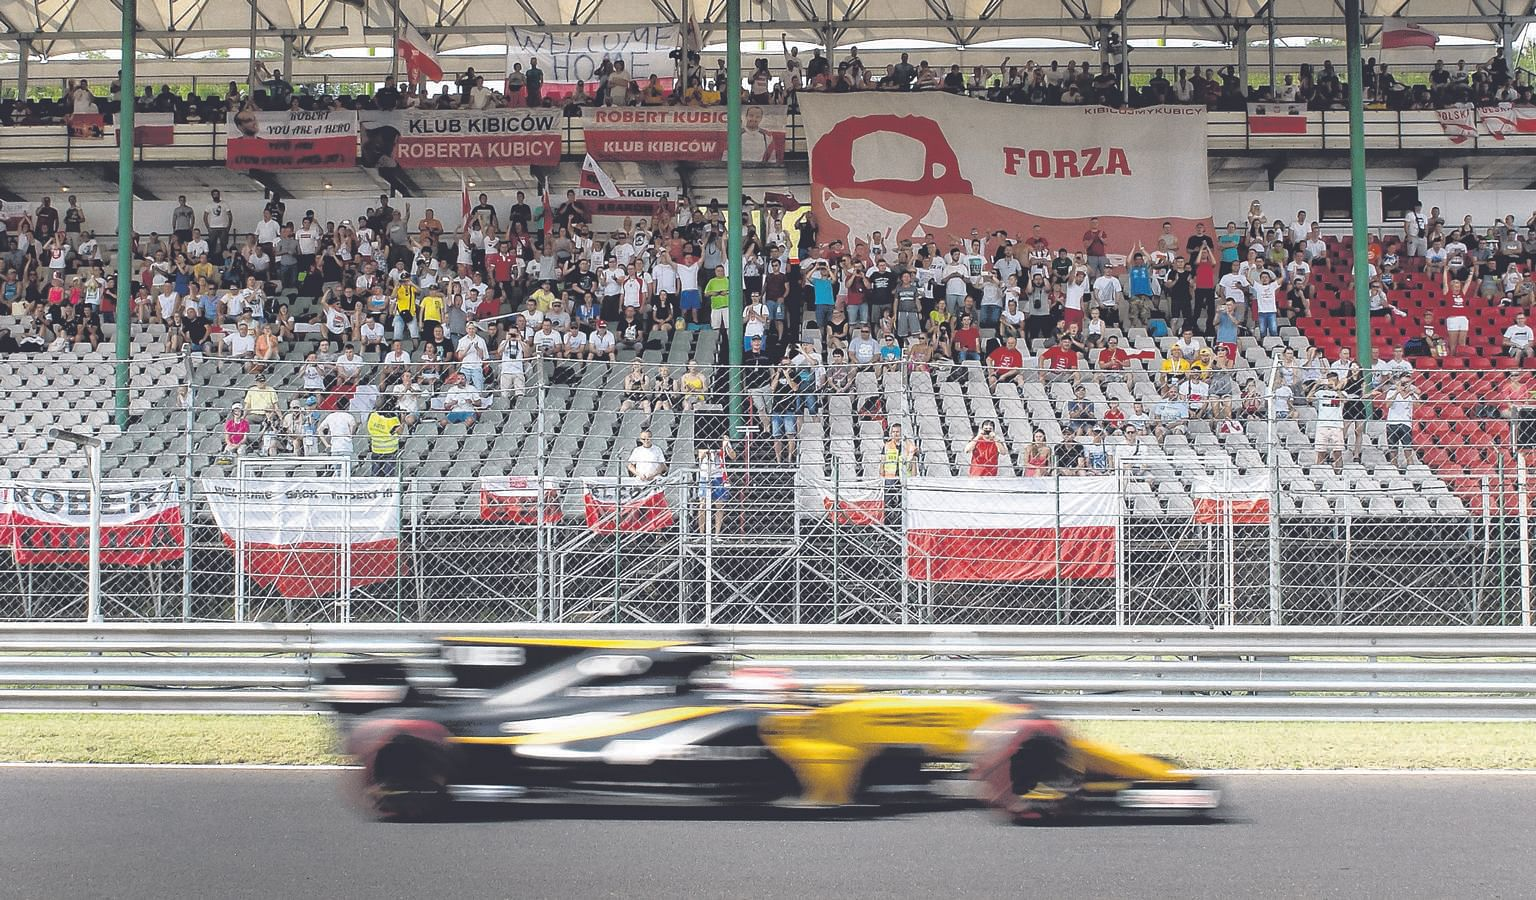 Fans cheering former F1 driver Robert Kubica during a test session for Team Renault on the Hungaroring circuit on Wednesday.